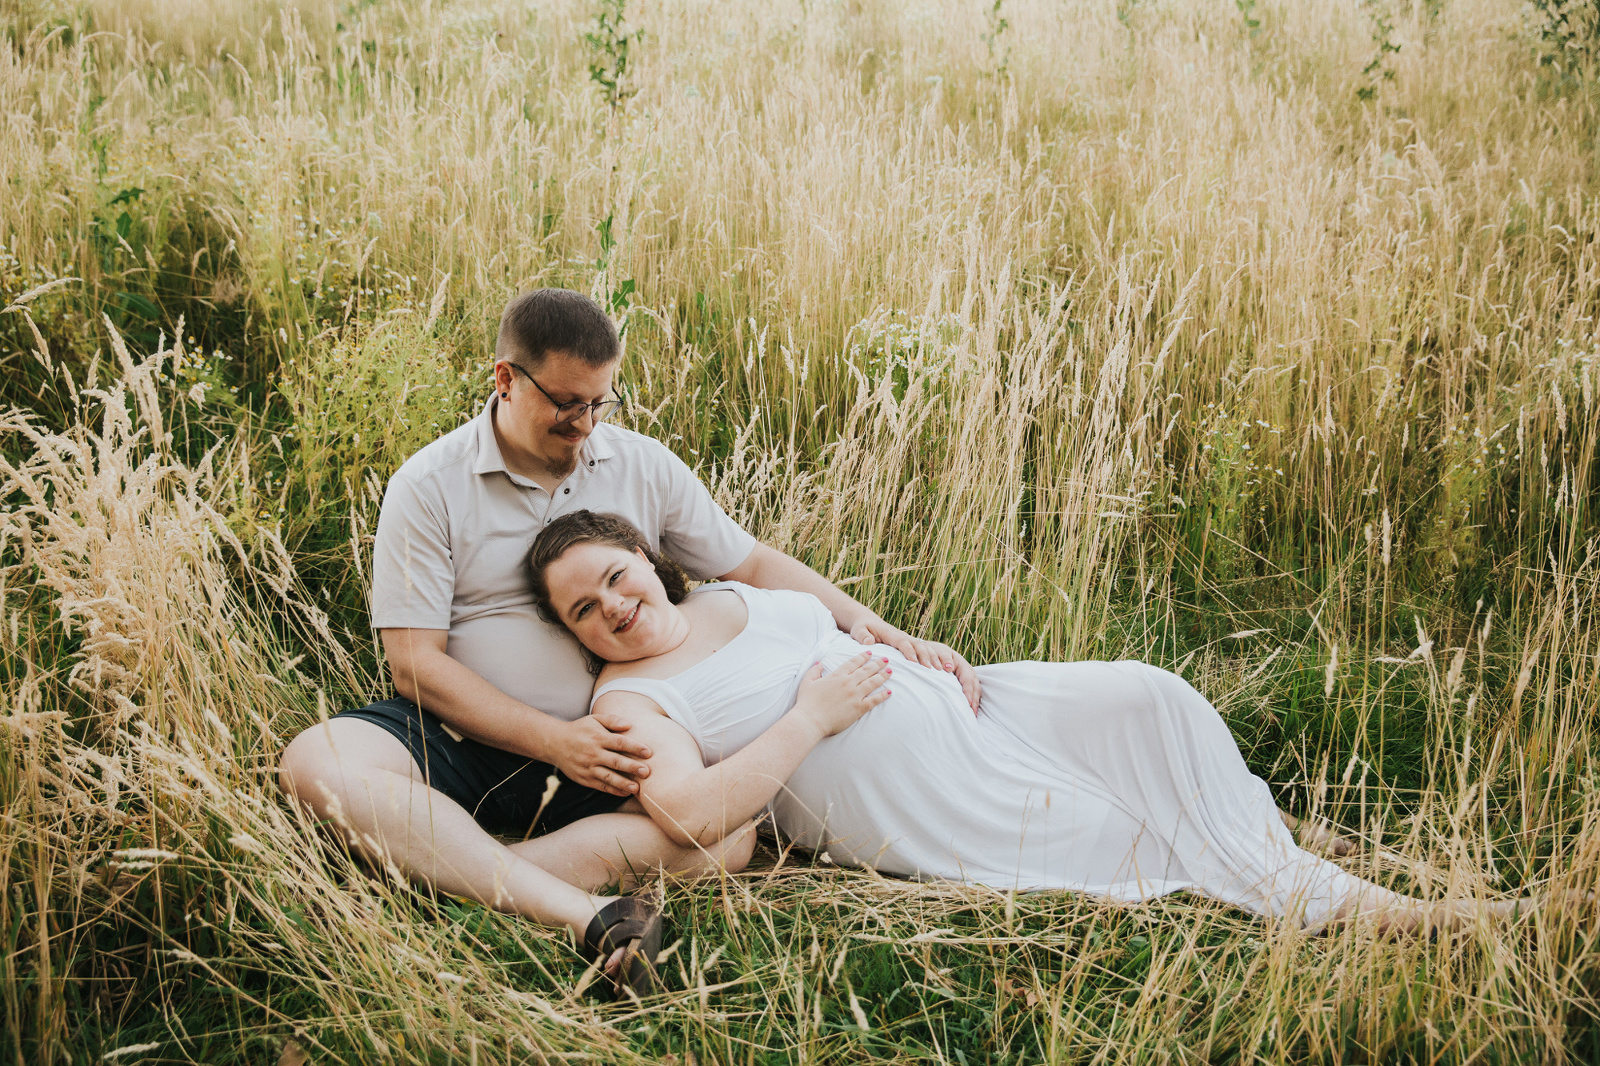 Dad/Partner looks on with affection at his wife who is pregnant the second time around in some tall grass in Hillsboro, Oregon.